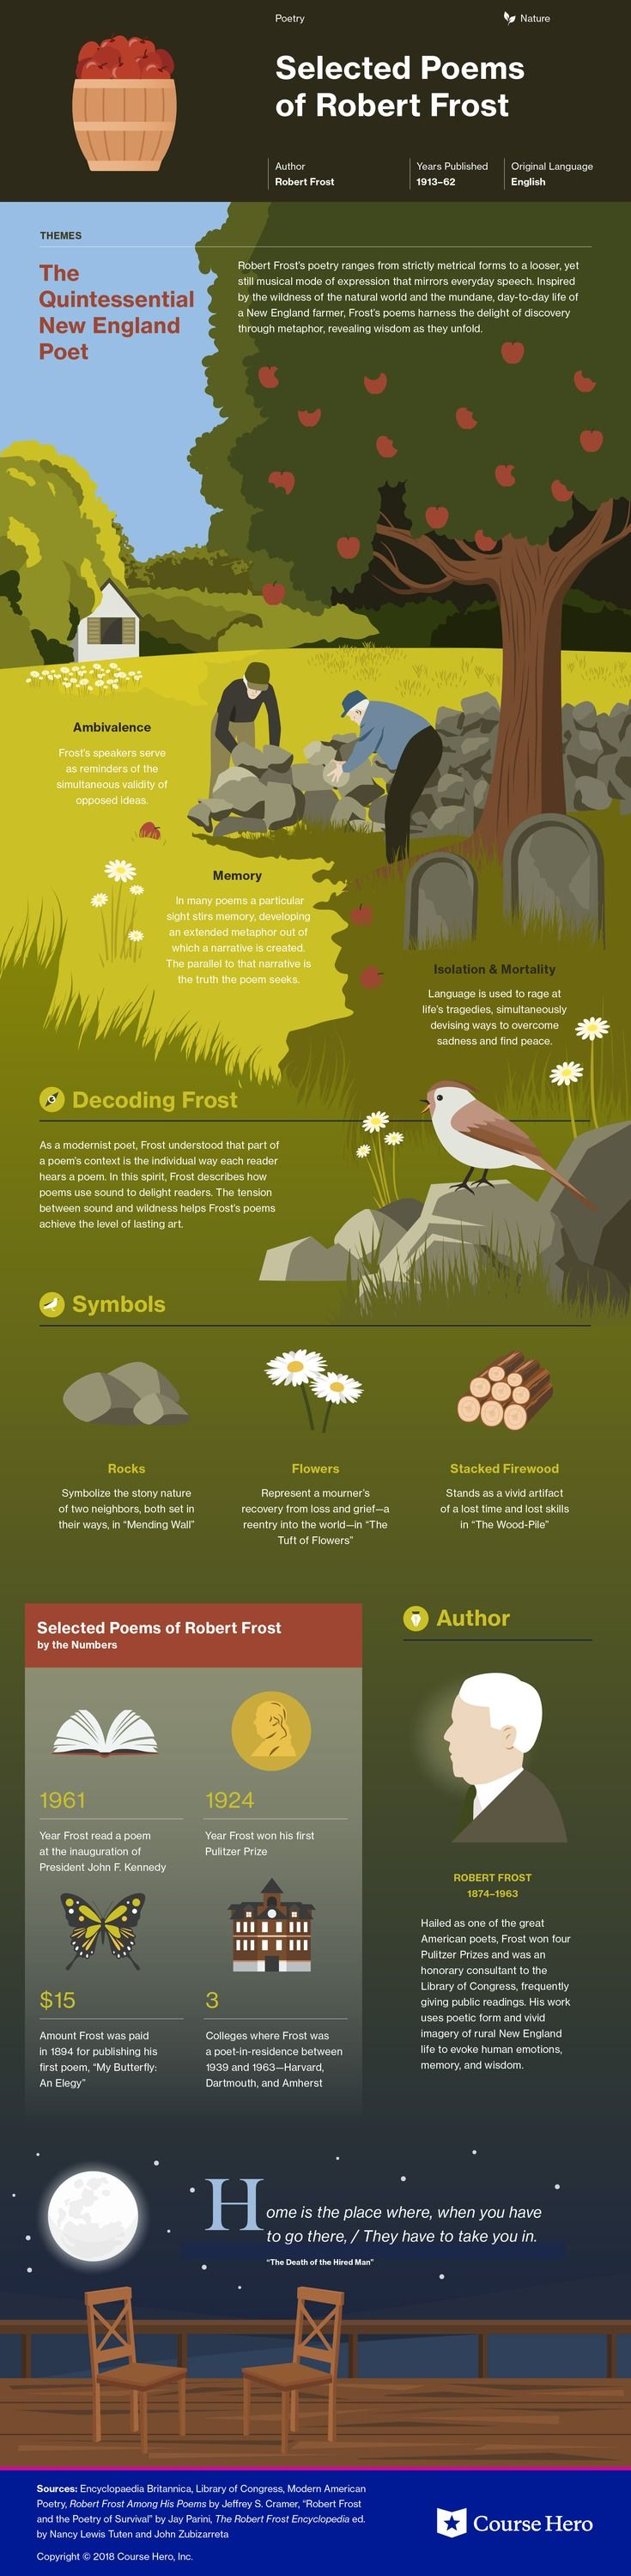 This @CourseHero infographic on The Poems of Robert Frost is both visually stunning and informative!